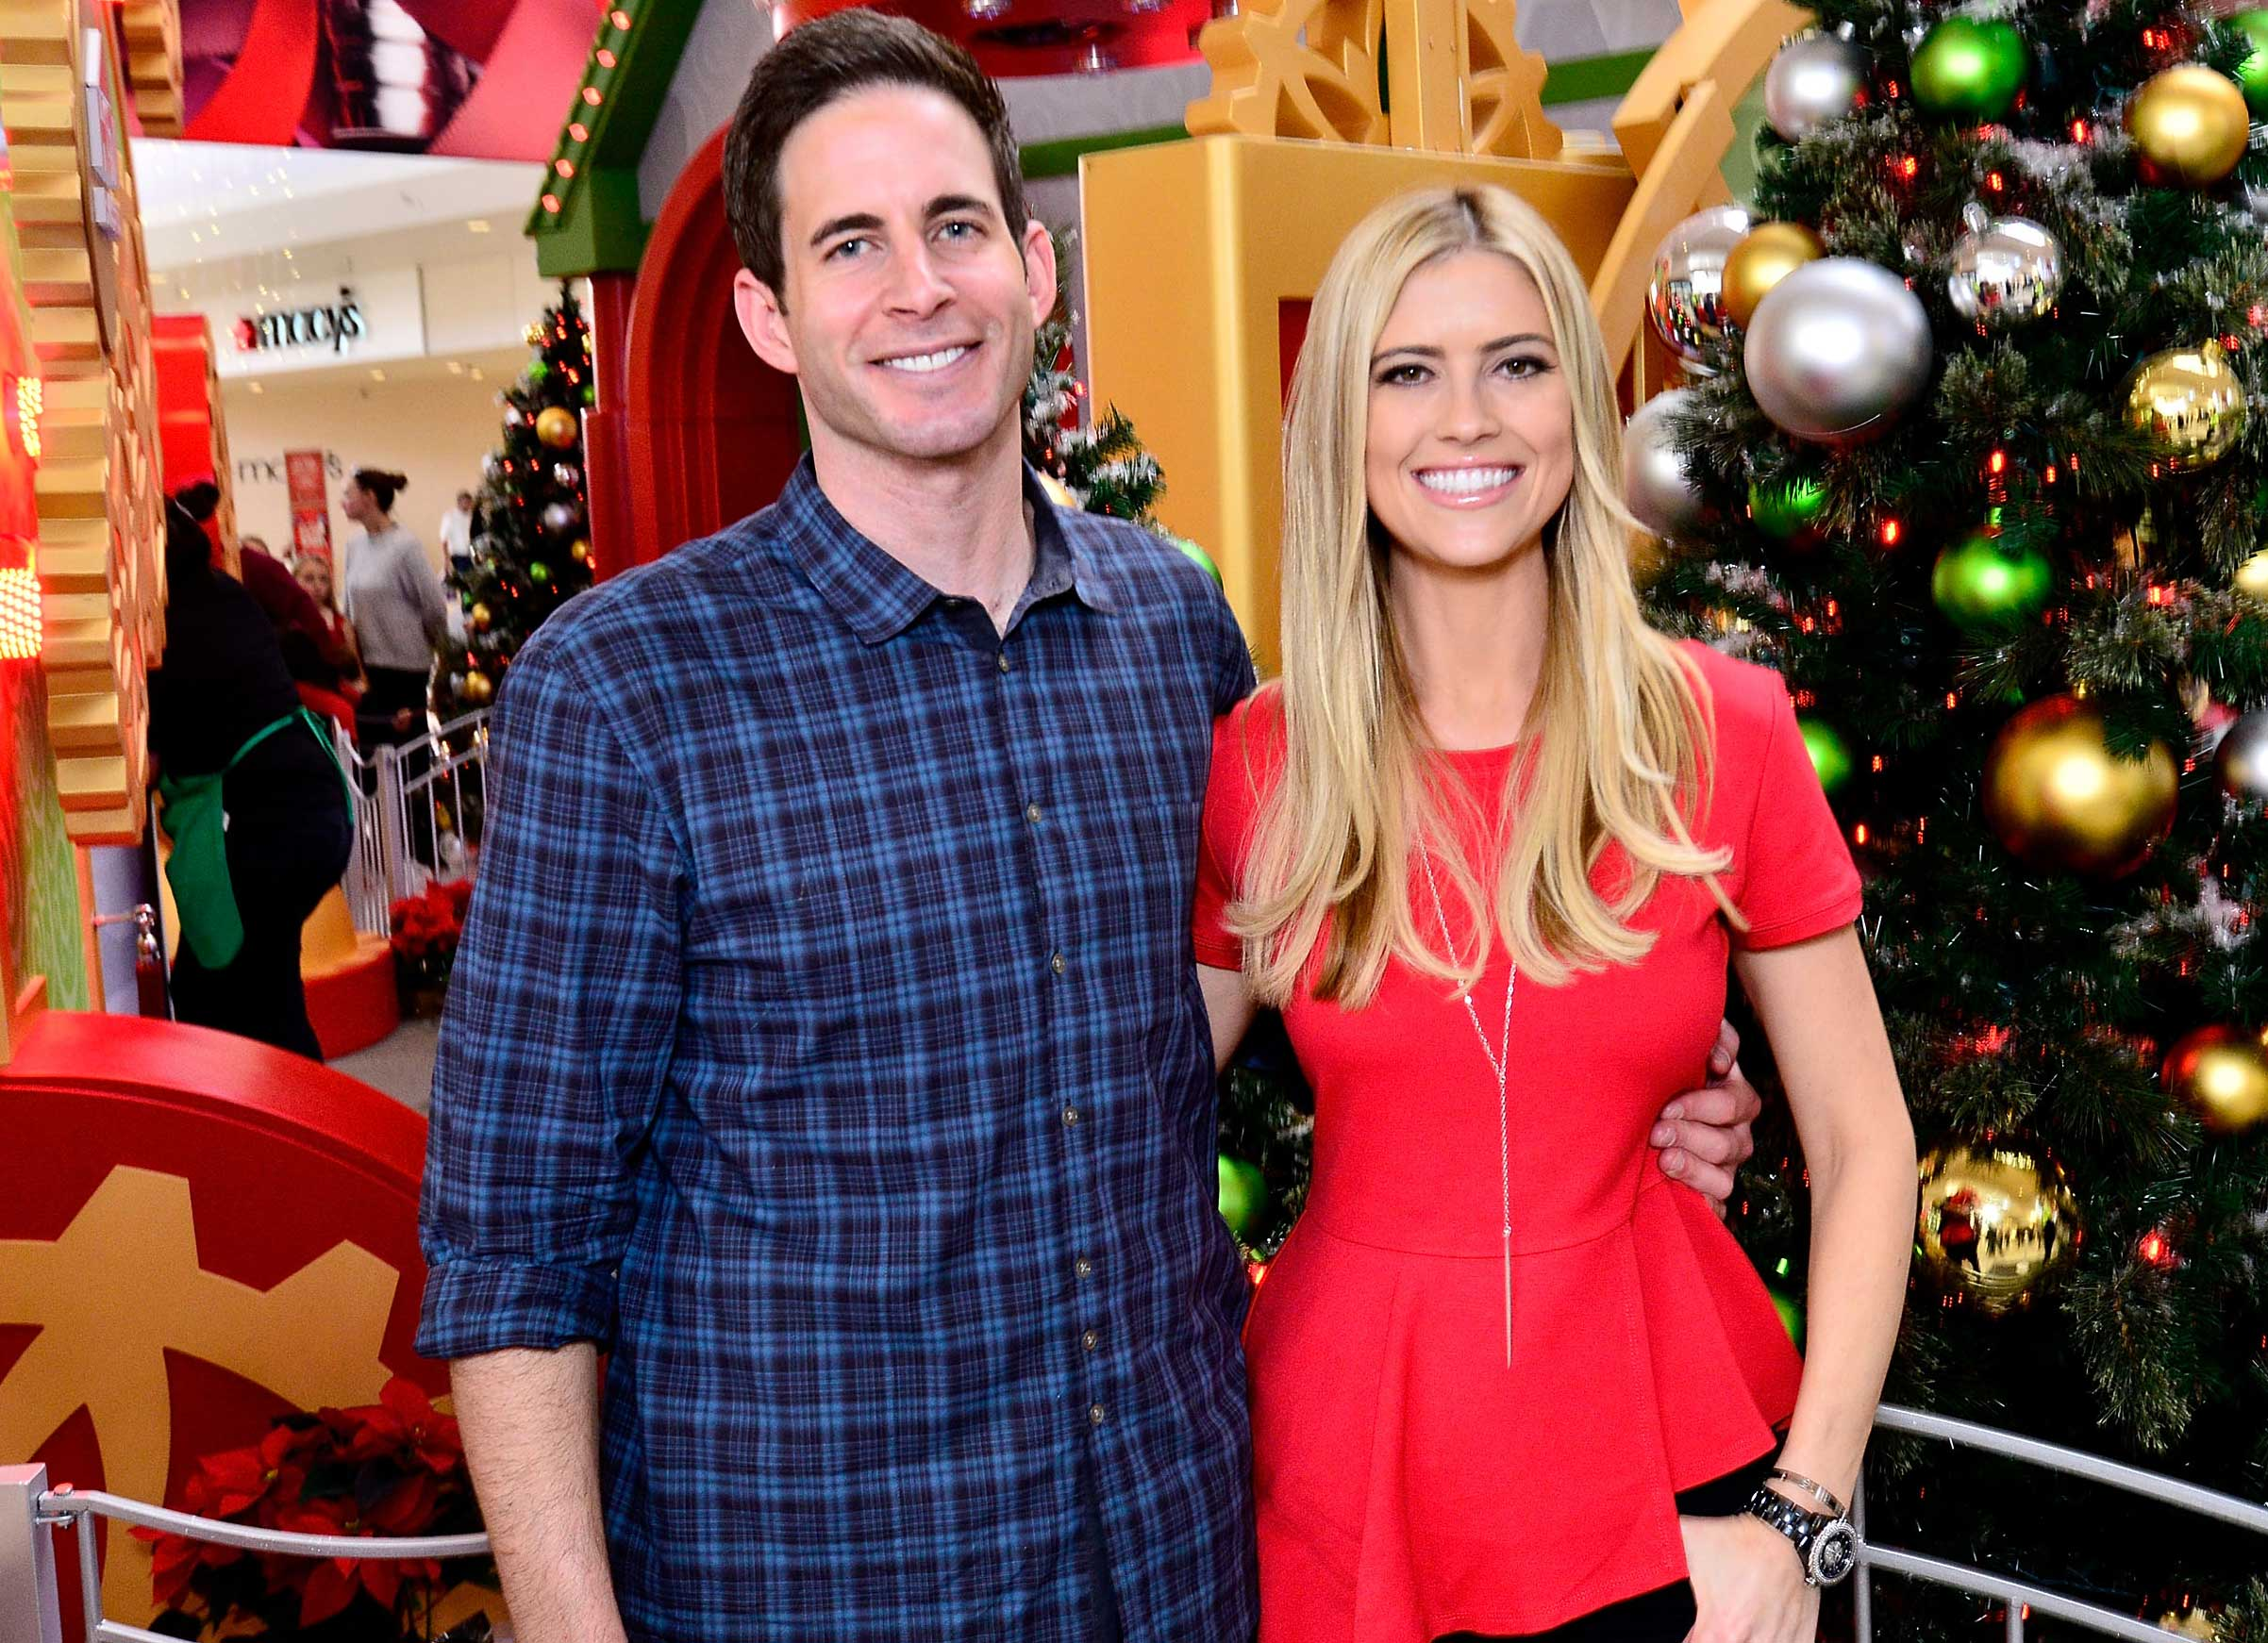 Who is the flip or flop girl dating